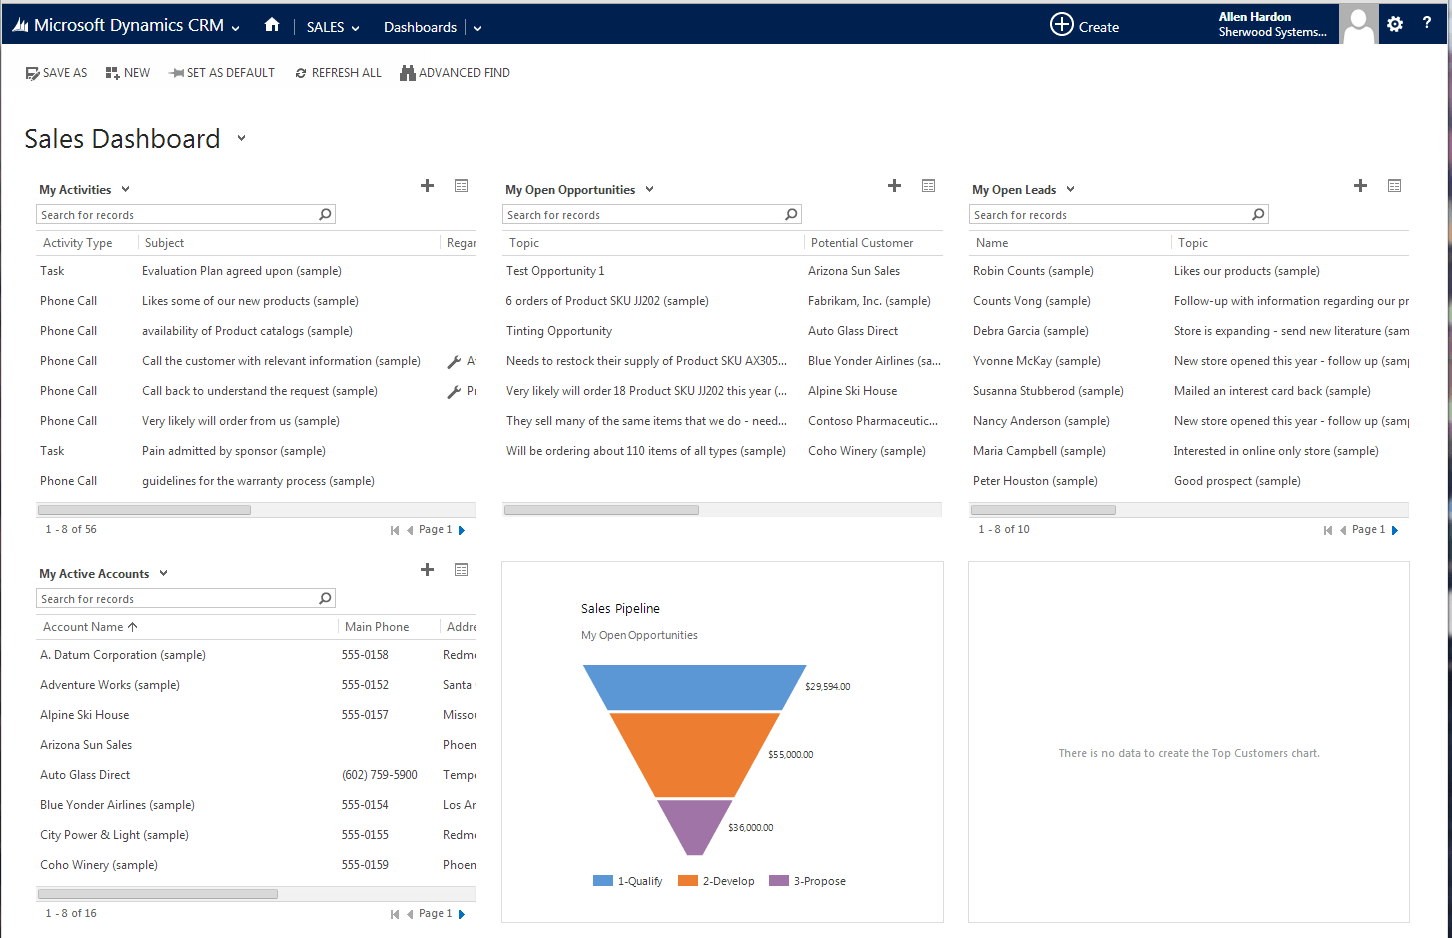 Image result for microsoft dynamics crm screenshots